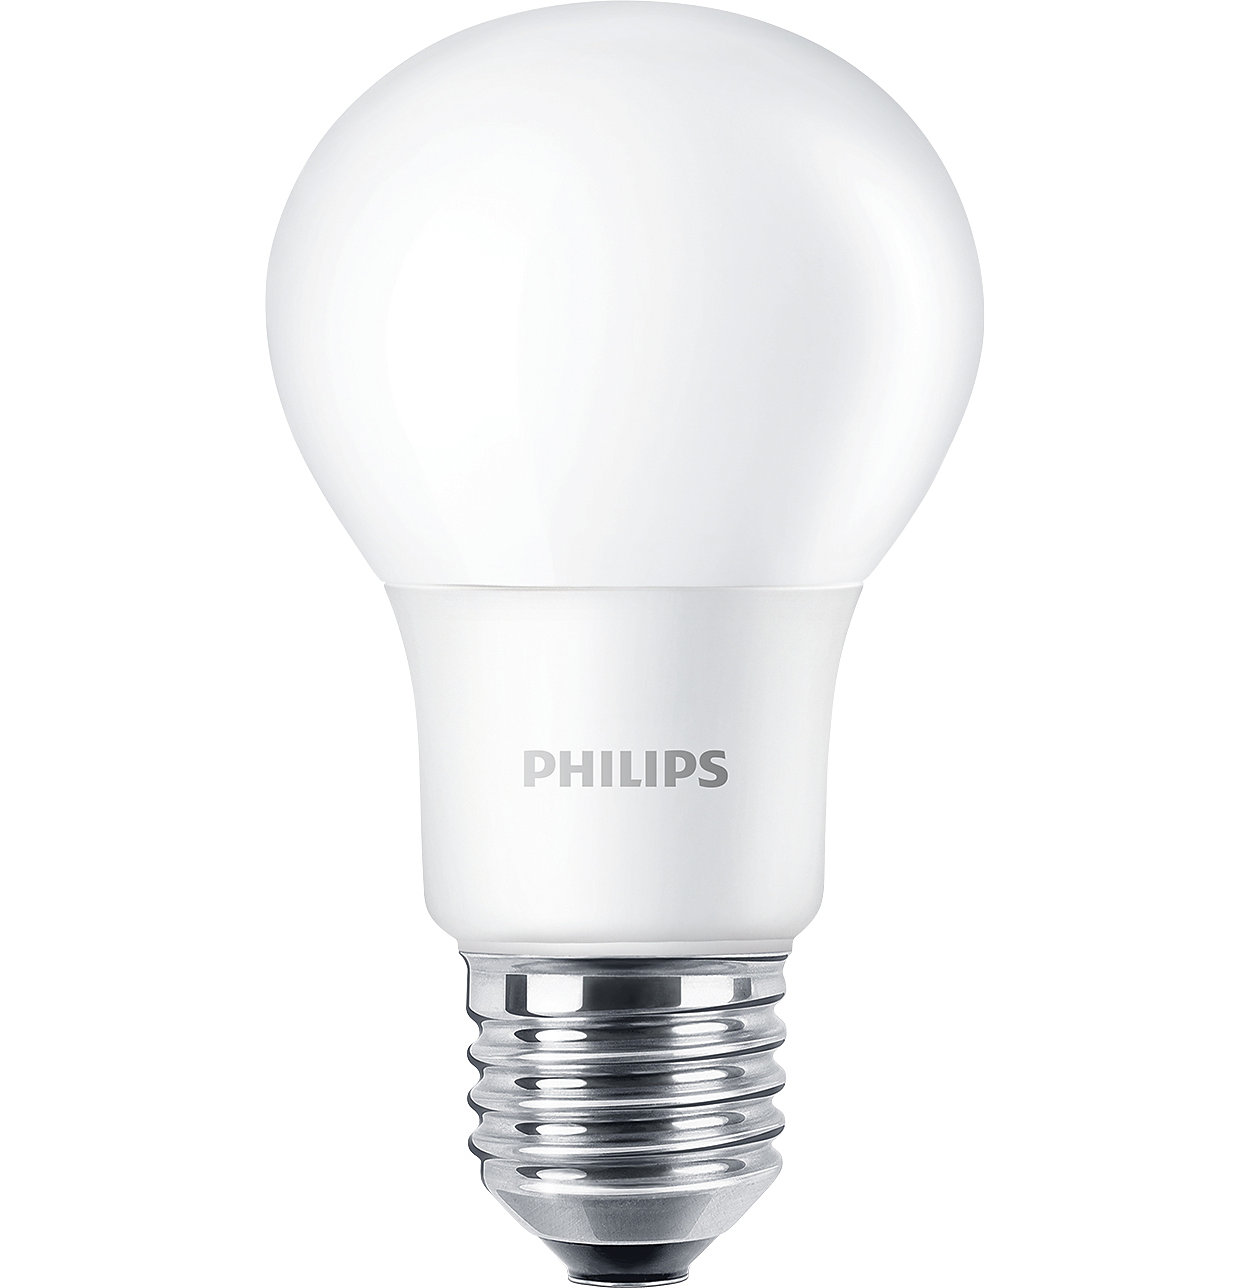 Attractive, dimmable LED alternative to popular incandescents.